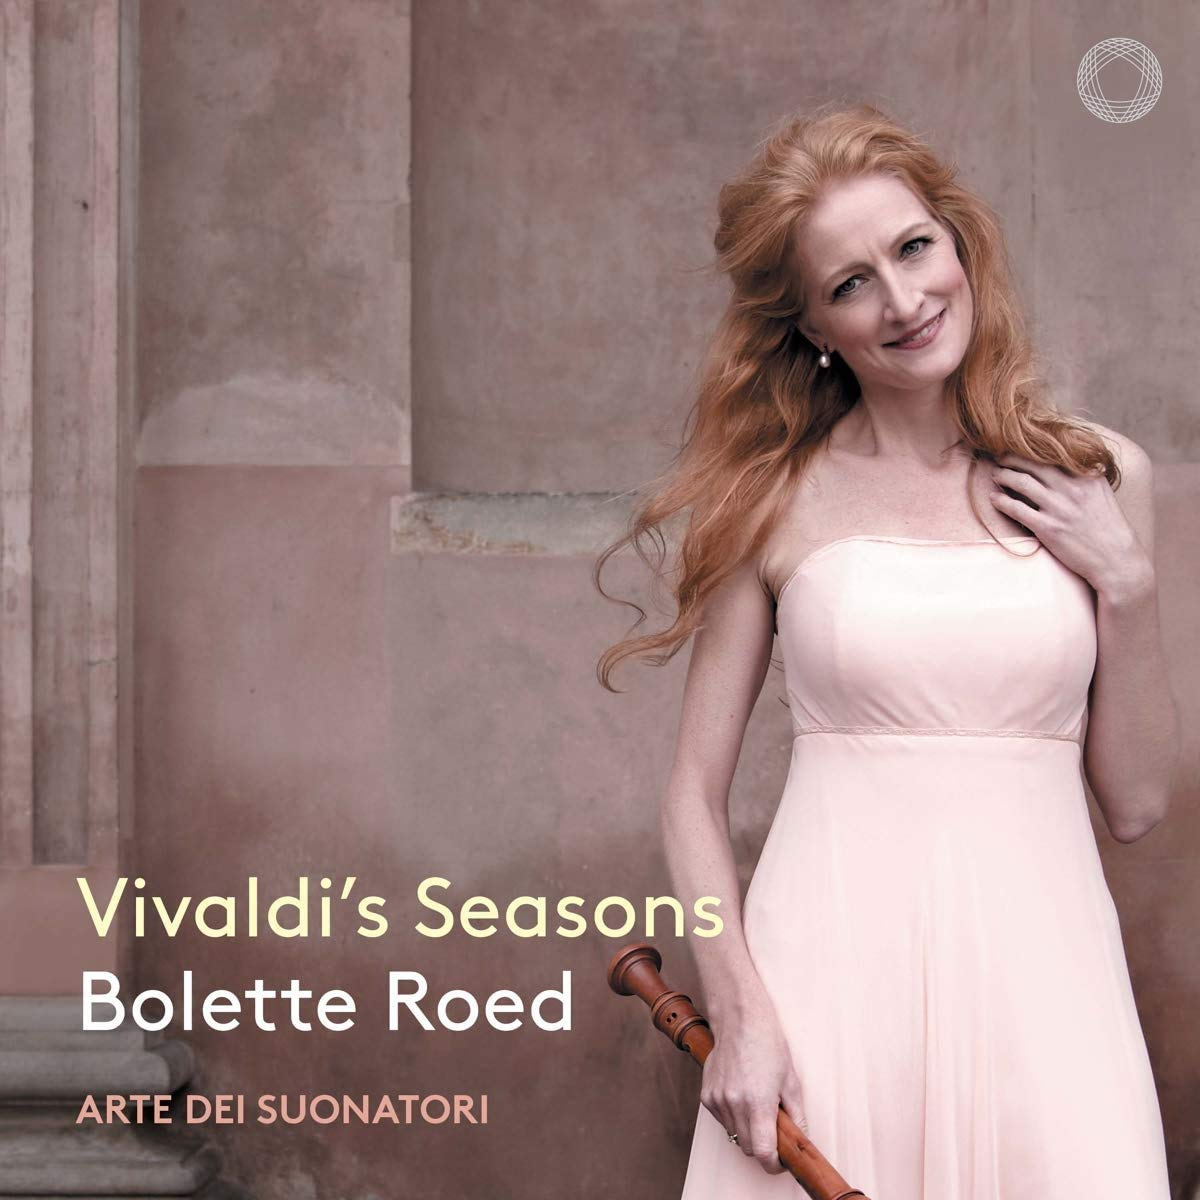 Bolette Roed, Antonio Vivaldi, n/a - Vivaldi's Seasons - Amazon.com Music